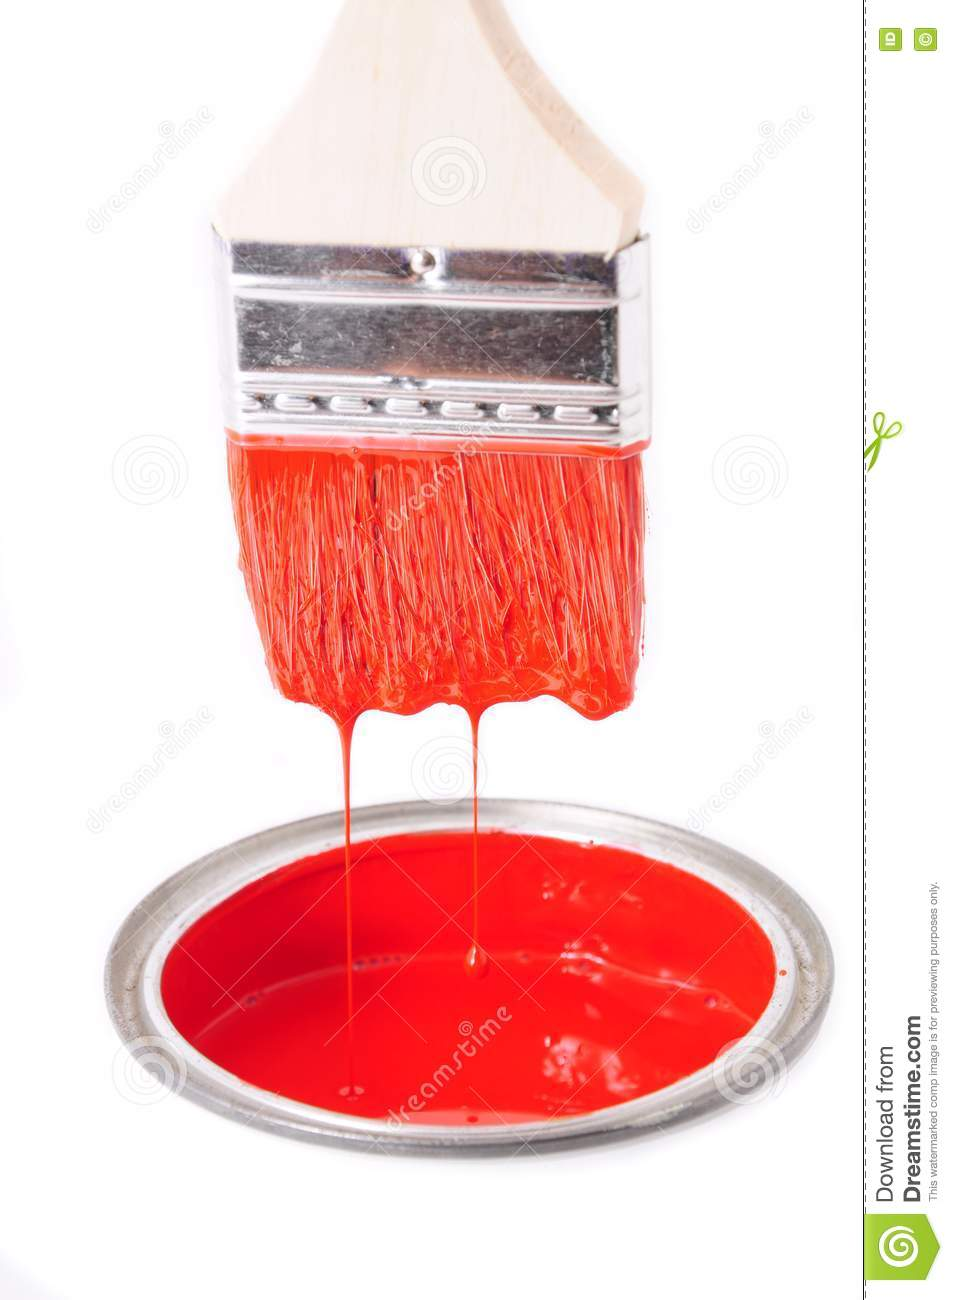 Red color royalty free stock photos image 16689028 - Dreaming about the color red ...